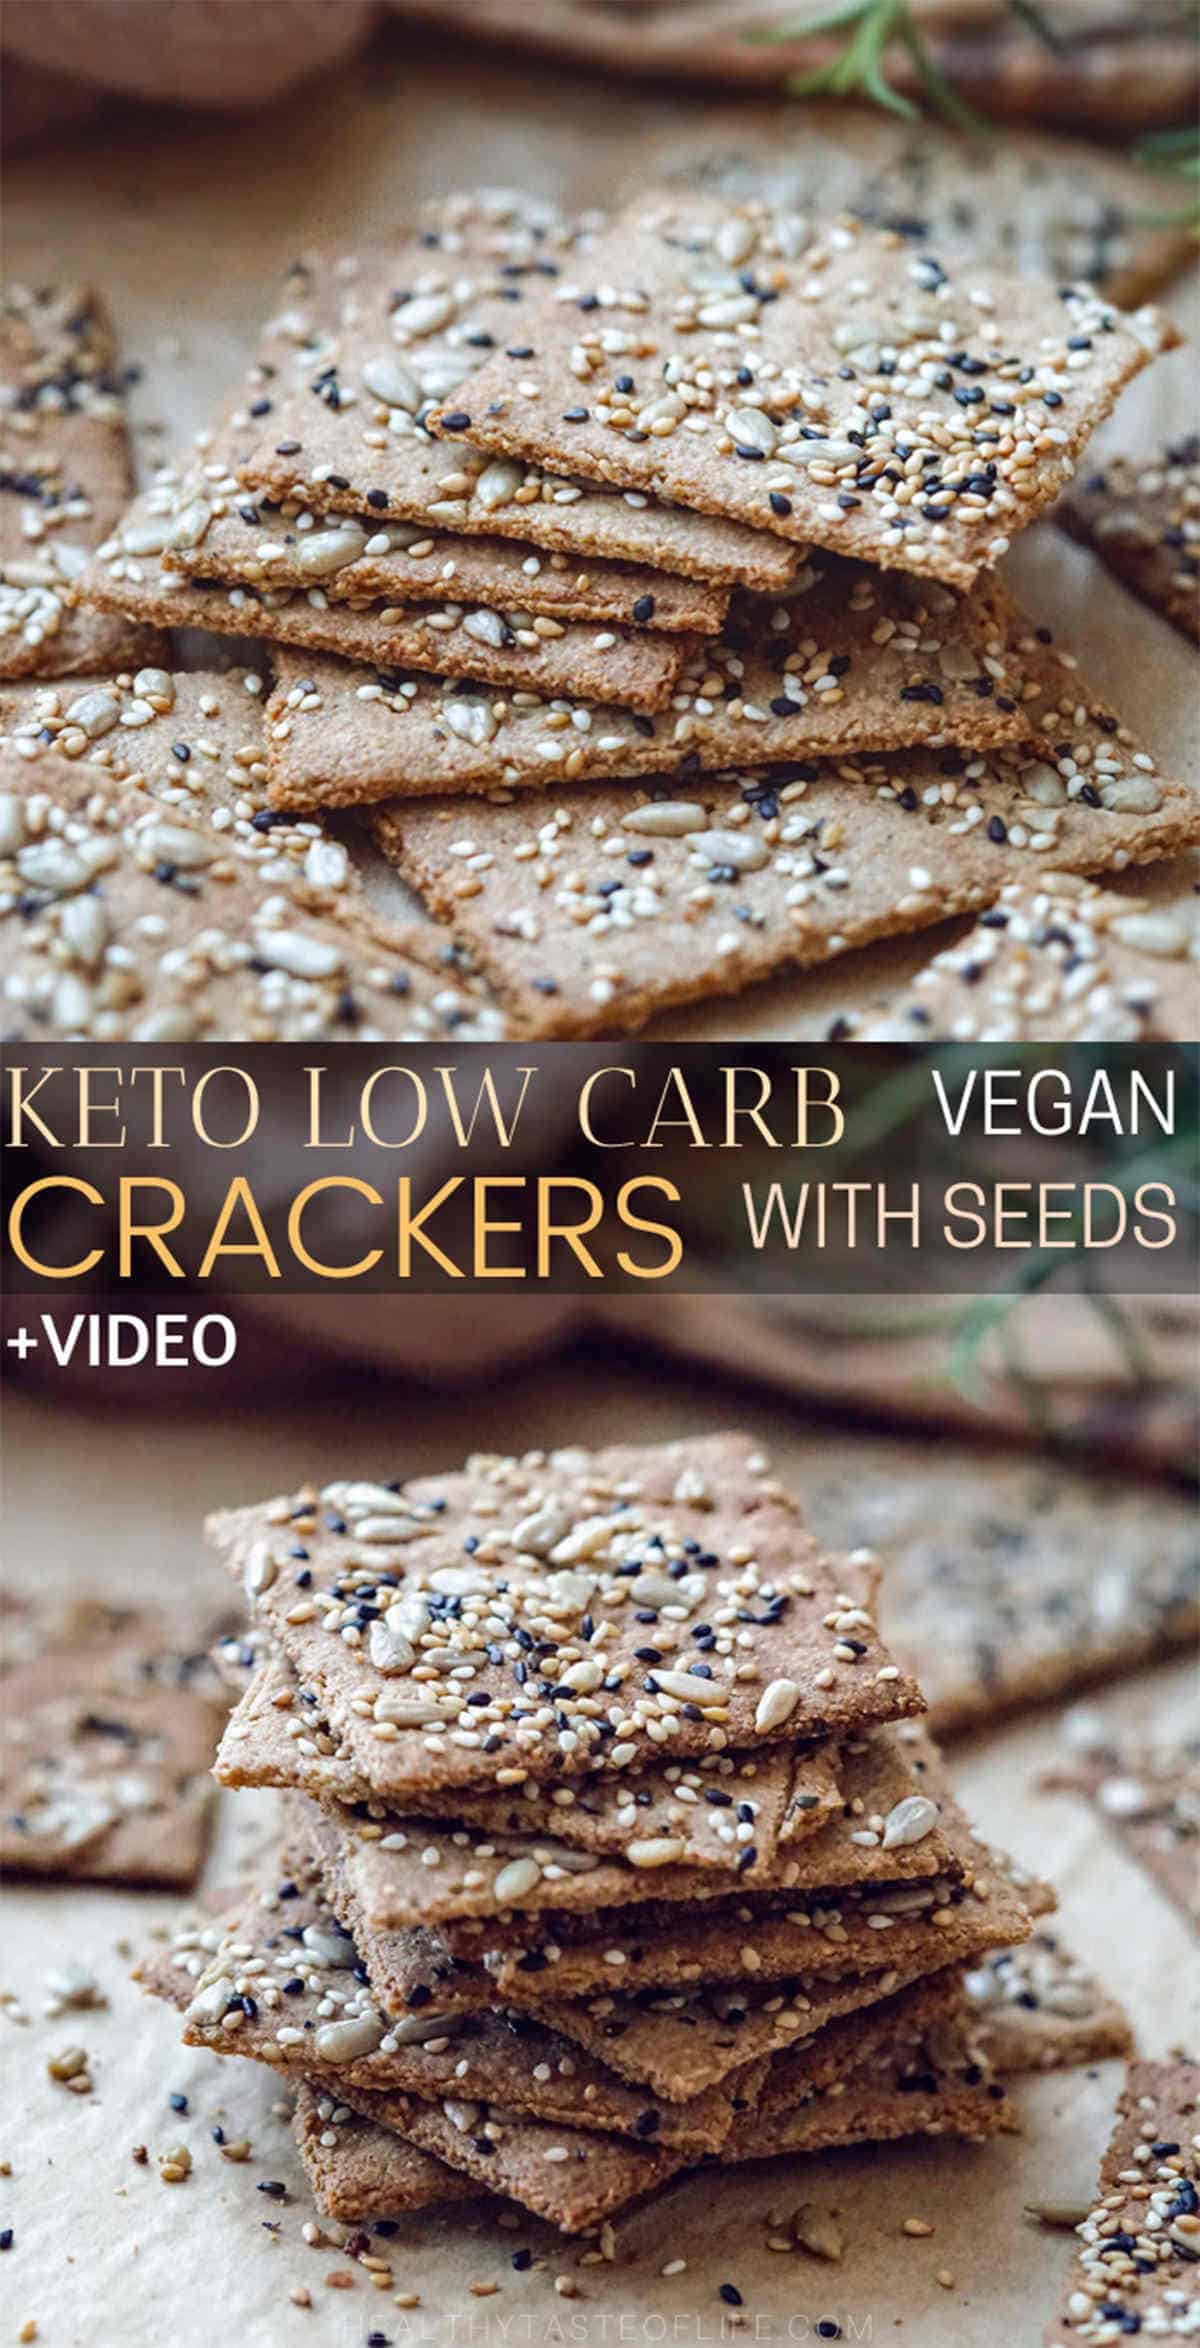 Crispy homemade low carb keto seed crackers recipe (+ video) that's also dairy free, gluten free, grain free, nut free, paleo and vegan. These keto crackers are made with flax seeds, sunflower seeds, sesame seeds healthy fat and grain free flour. A low carb keto snack great for anyone who is following a dairy free, vegan keto diet, no cheese, no eggs and no almond flour here. #ketocrackers #ketoseedcrackers  #ketocrackersrecipe #vegan #dairyfree #snack #lowcarb#ketocrackersrecipe #vegan #dairyfree #snack #lowcarb#ketocrackersrecipe #vegan #dairyfree #snack #lowcarb